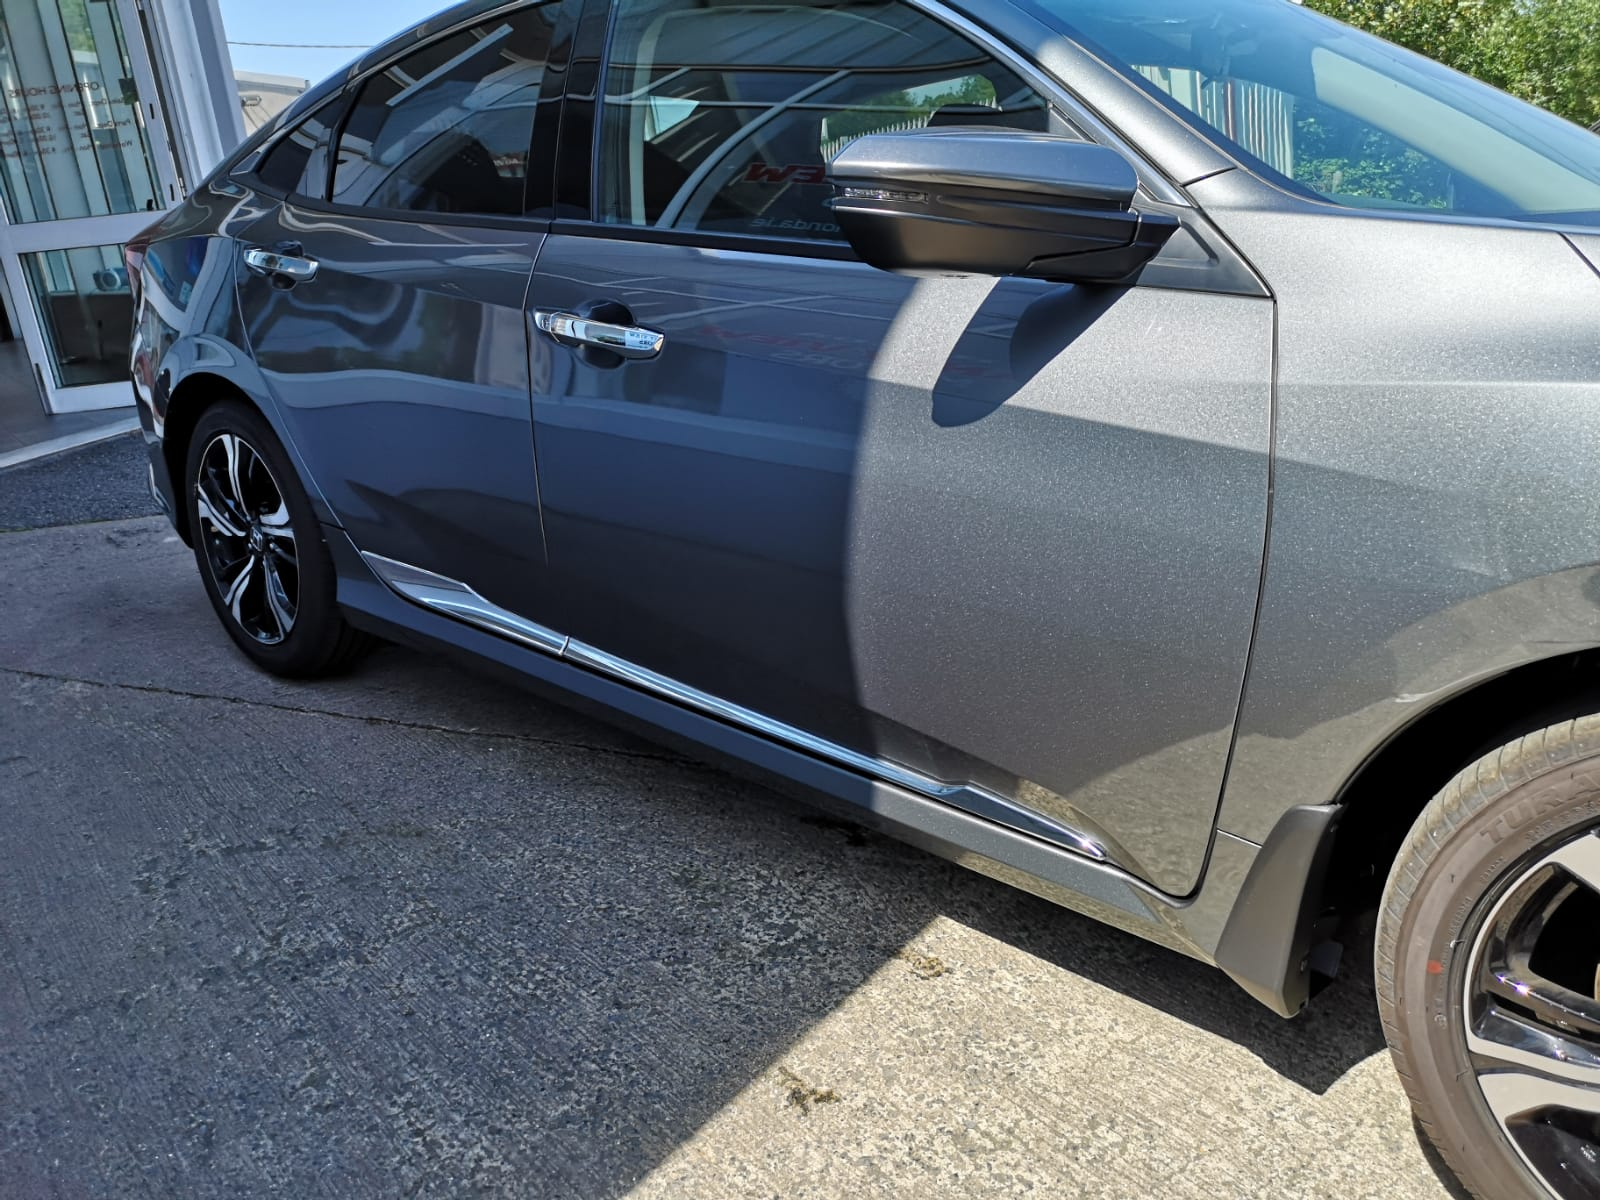 Civic Sedan Chrome Pack available for €240